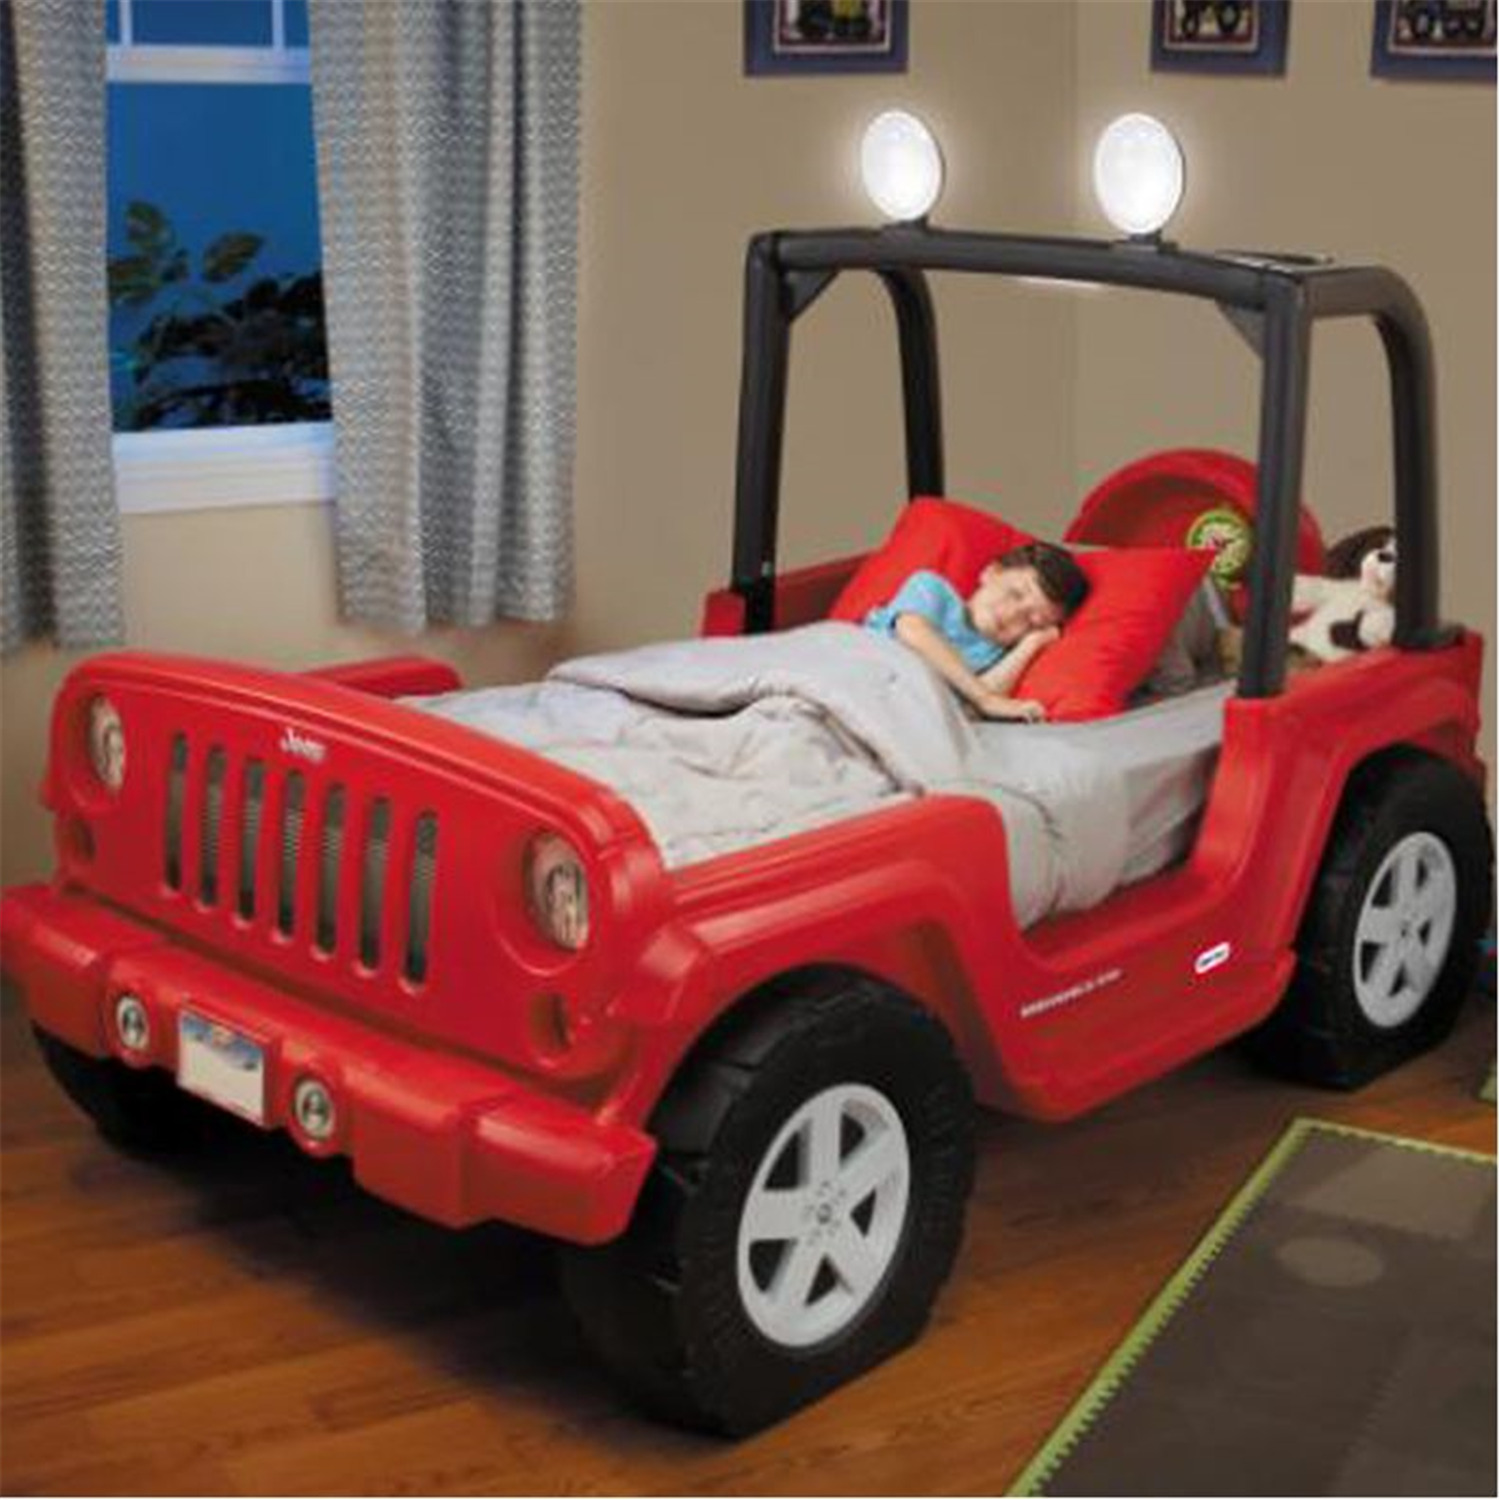 ... Jeep Wrangler Toddler to Twin Bed by OJ Commerce 635632M - $411.85